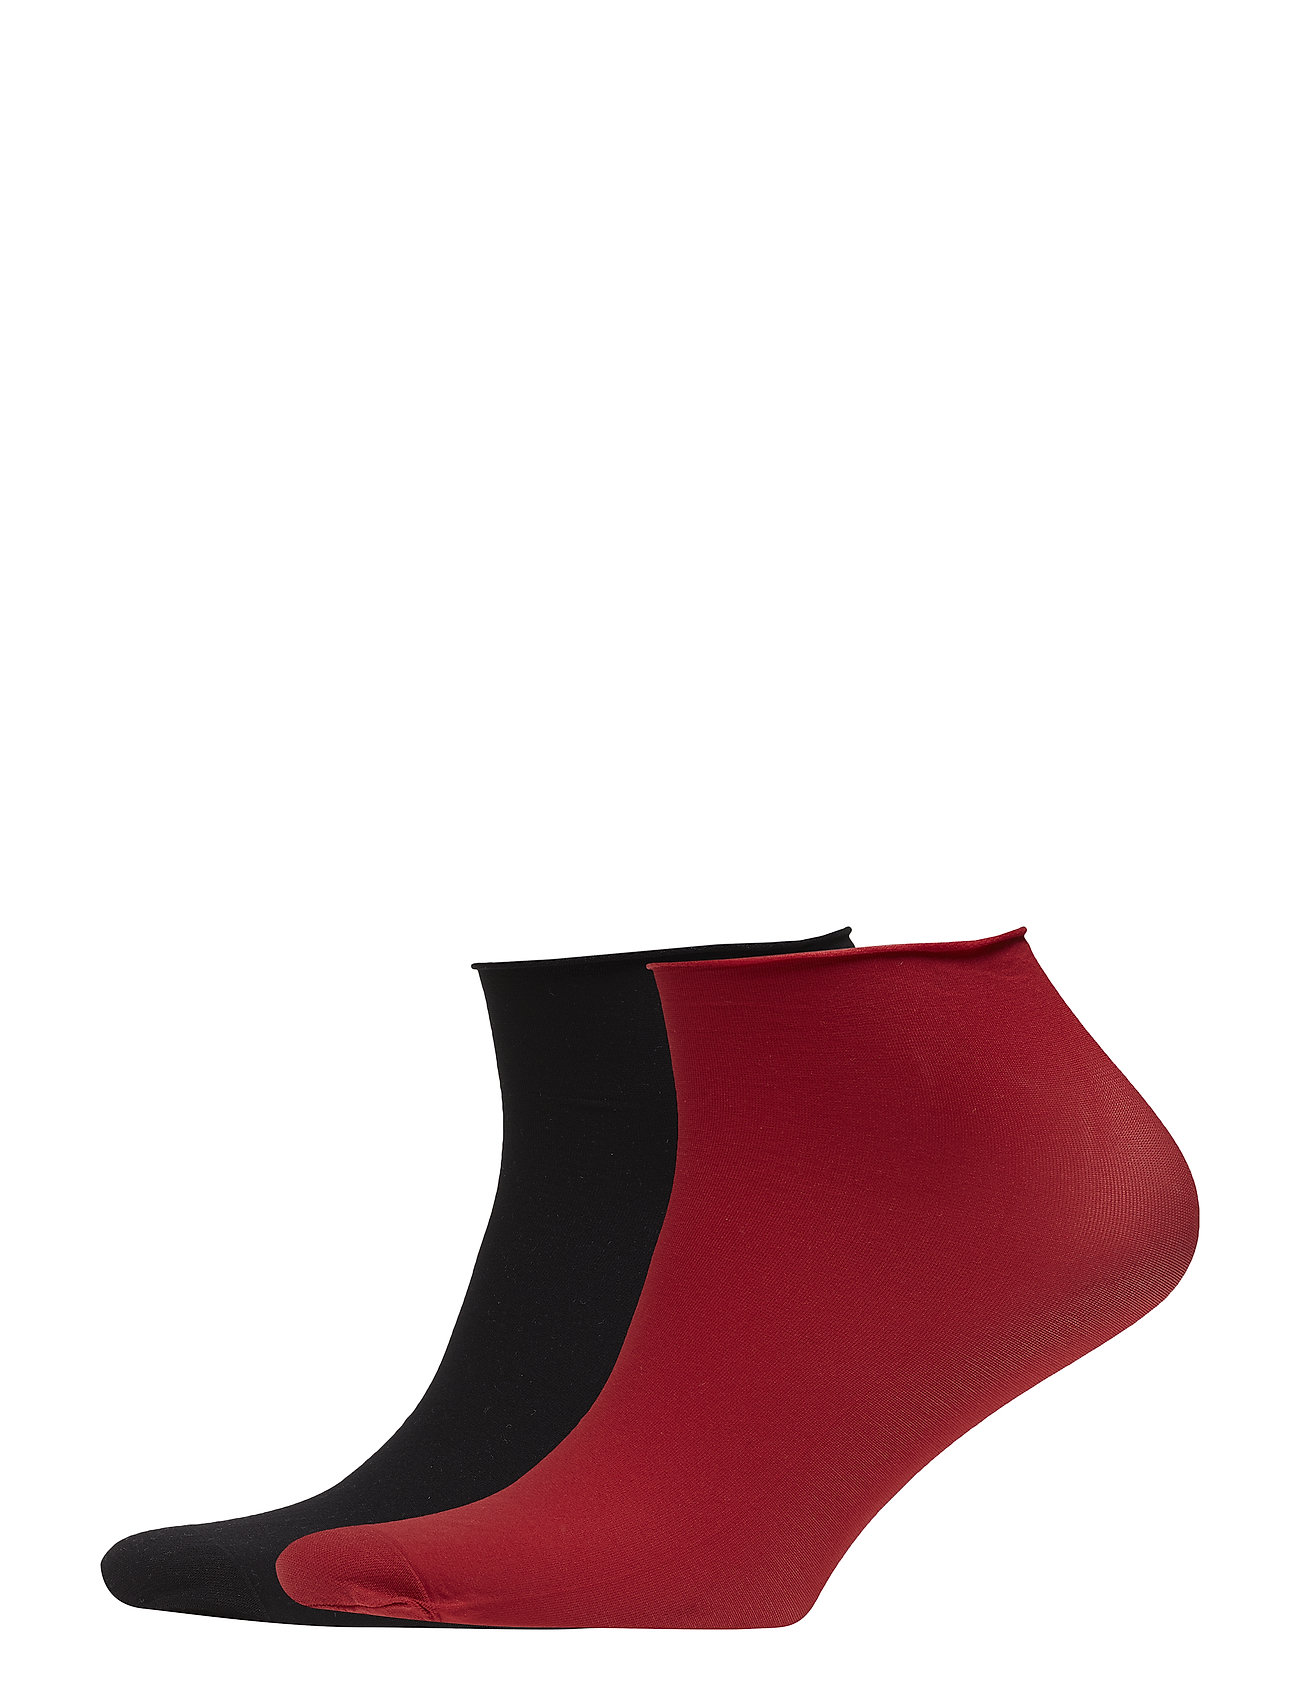 Swedish Stockings Judith Premium socks 2-pack 30D - BLACK/DARK RED